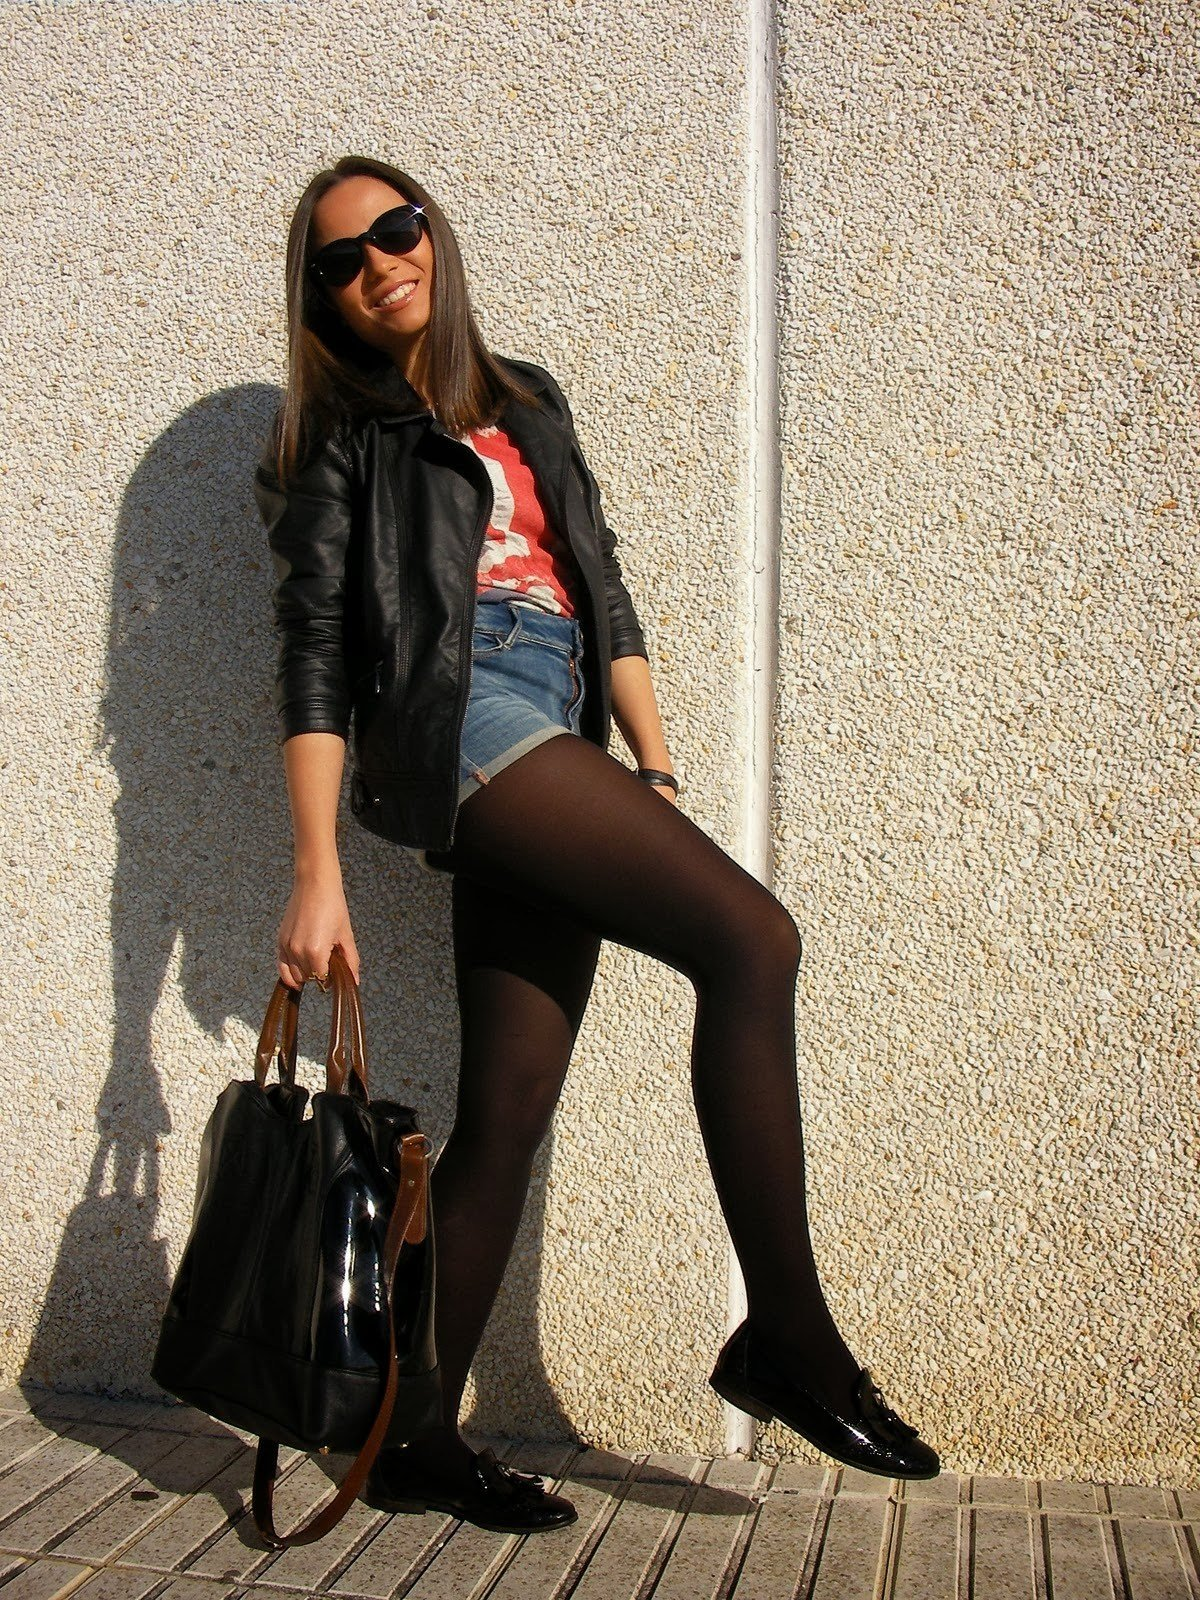 The Best Shorts Black Tight Outfit Ootd Fashion Pictures